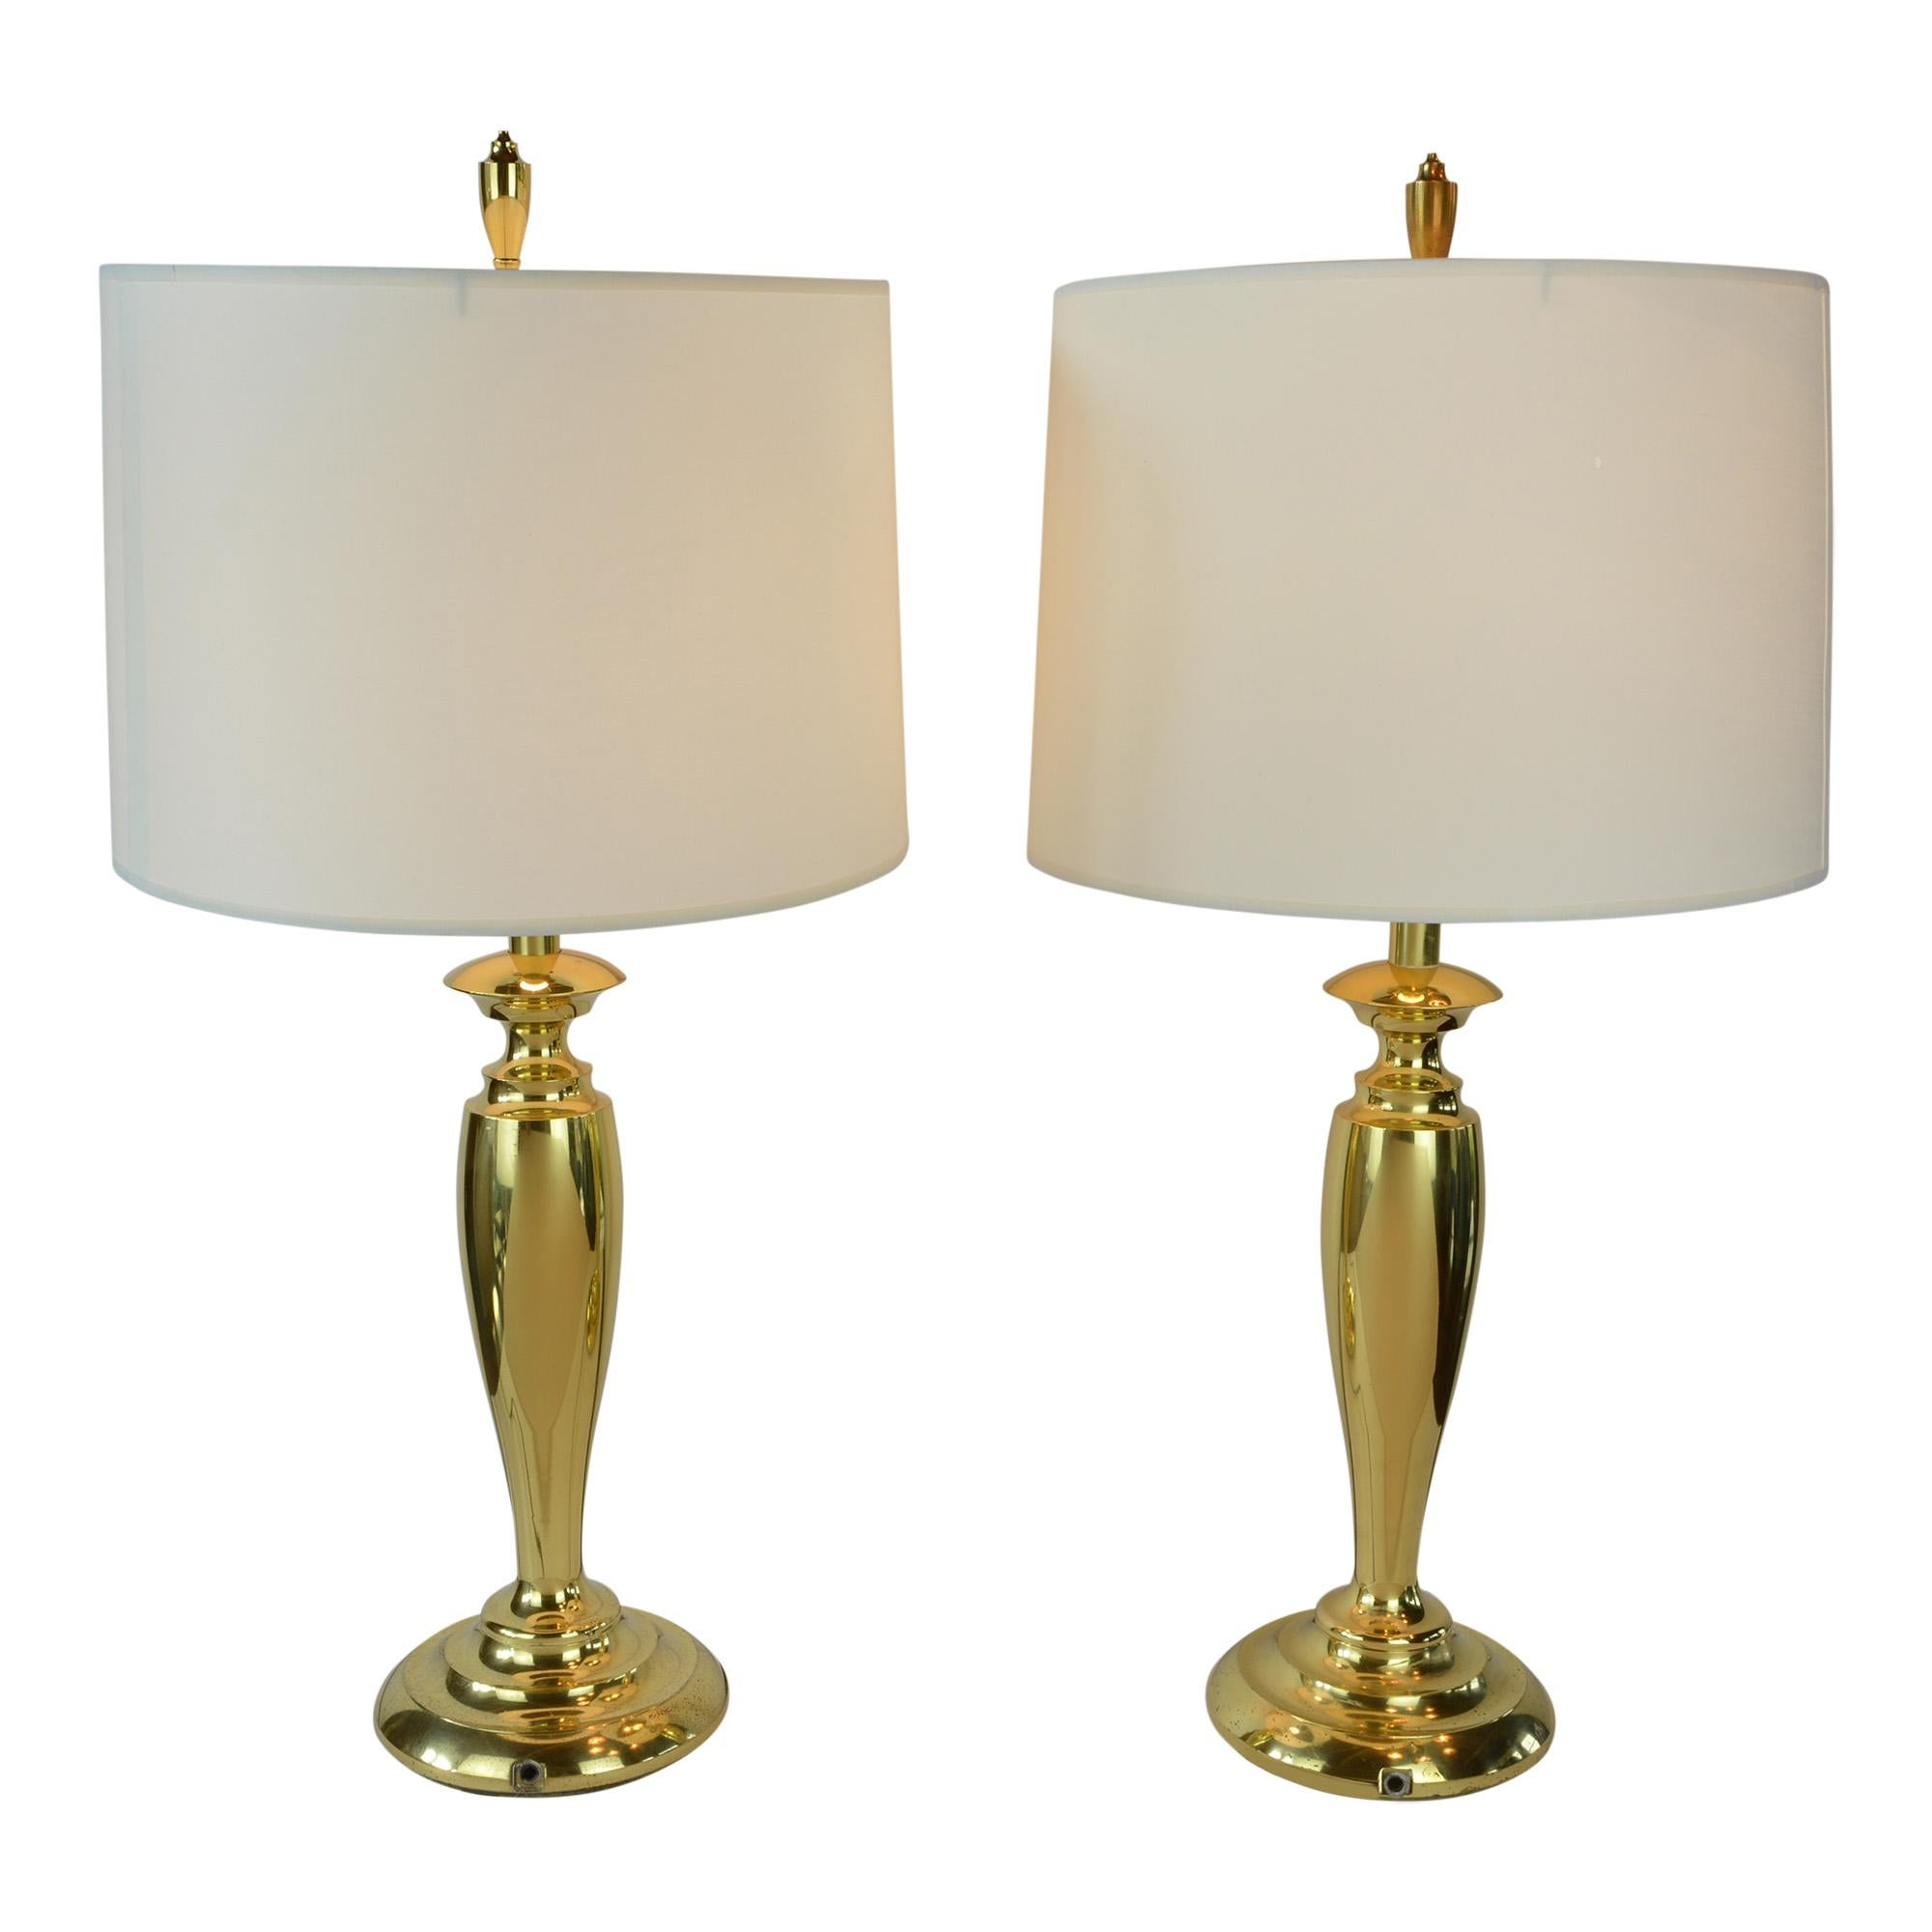 Pair of brass stiffel mid century modern table lamps with drum shades for sale at 1stdibs